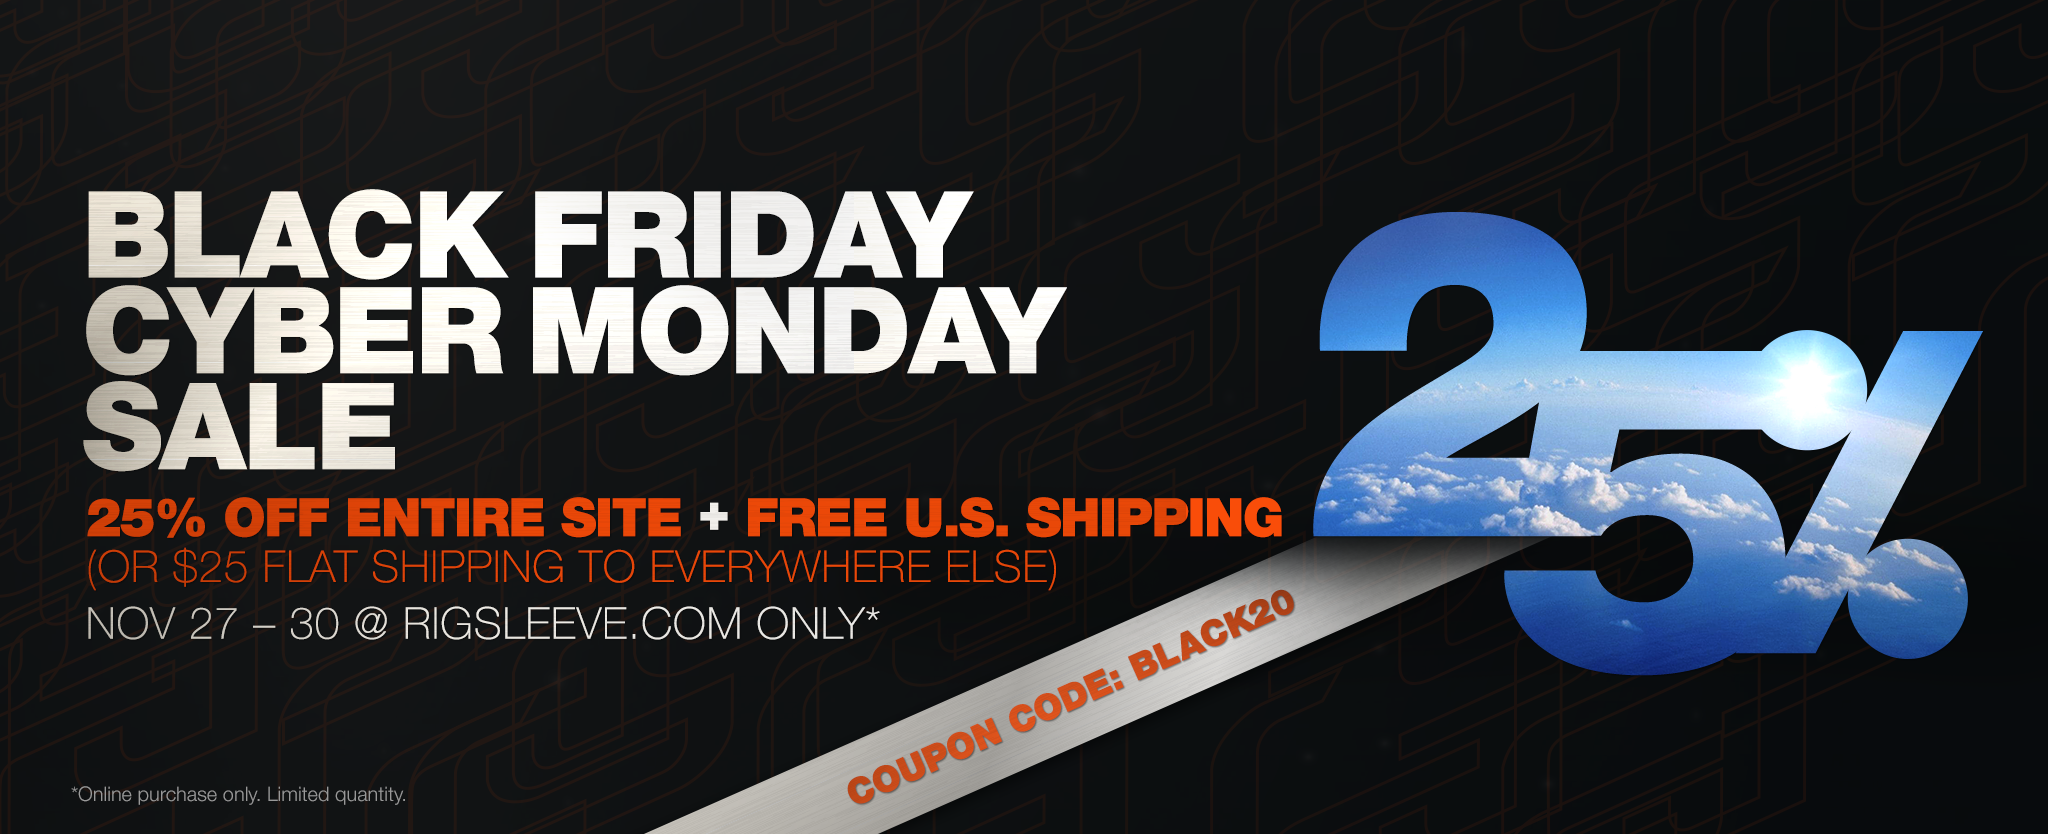 BLACK FRIDAY CYBER MONDAY SALE 25% OFF ENTIRE SITE